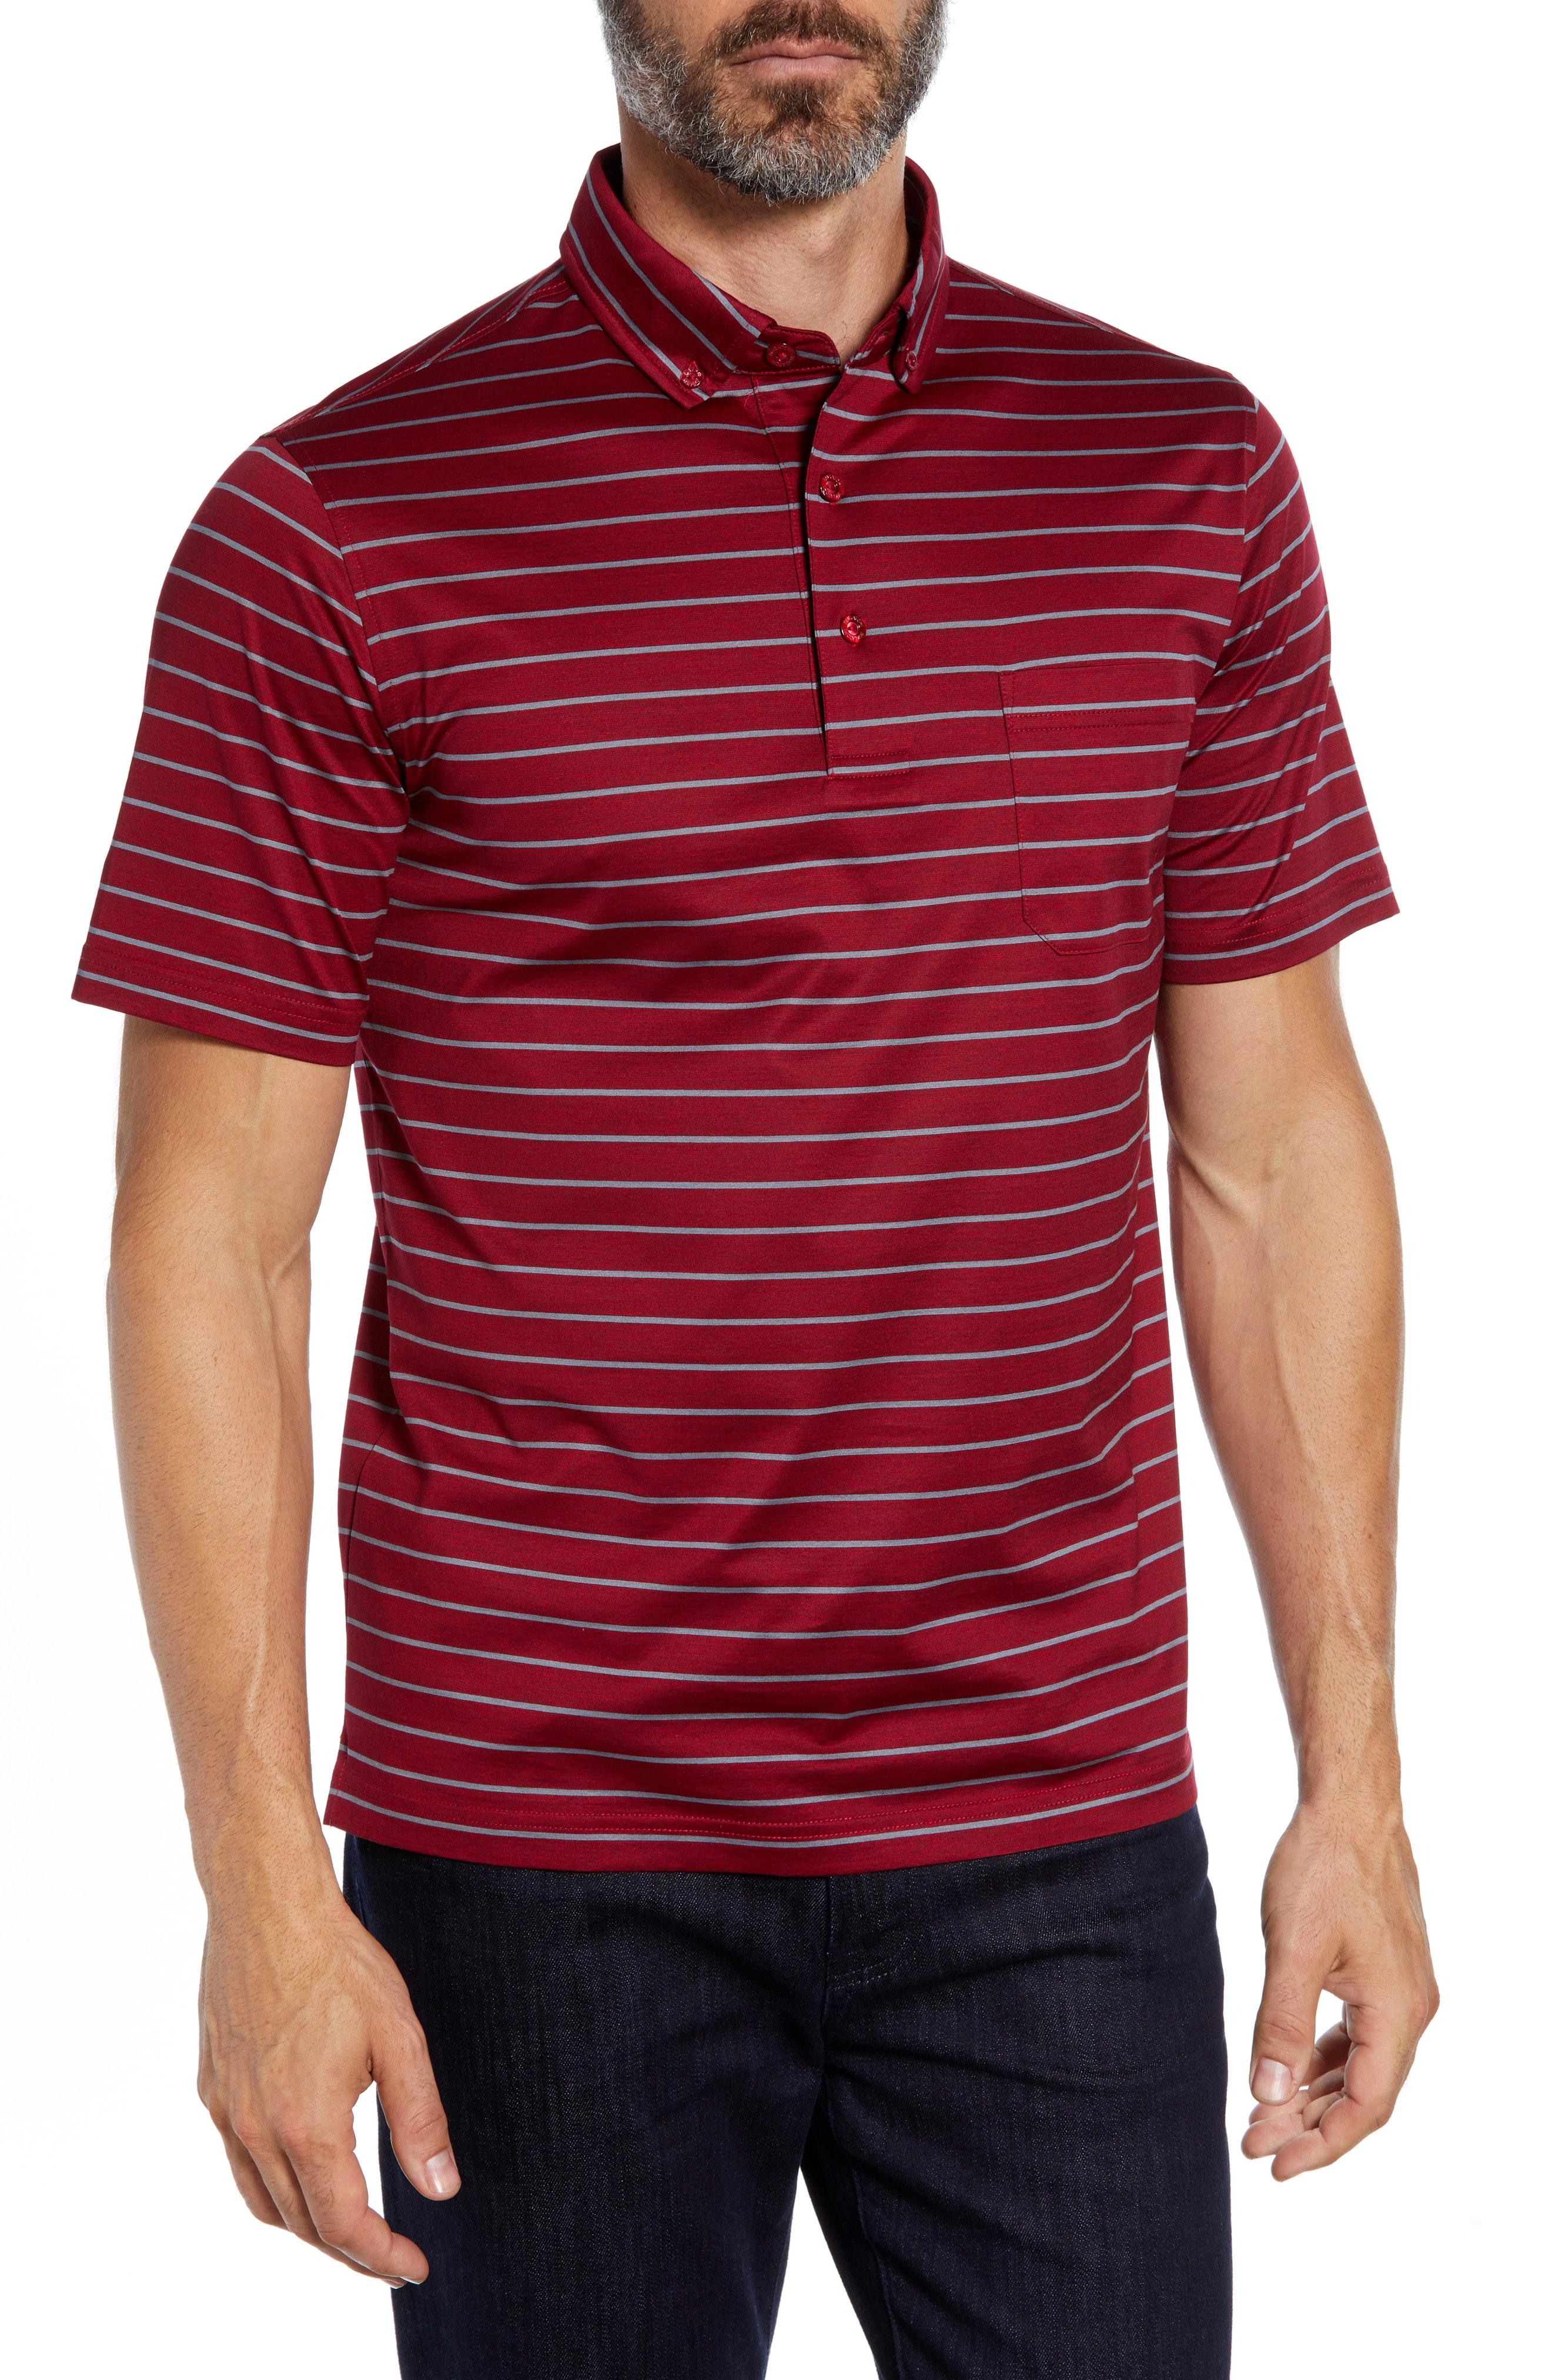 d412acc3 Lyst - Bugatchi Stripe Knit Polo in Red for Men - Save 41%